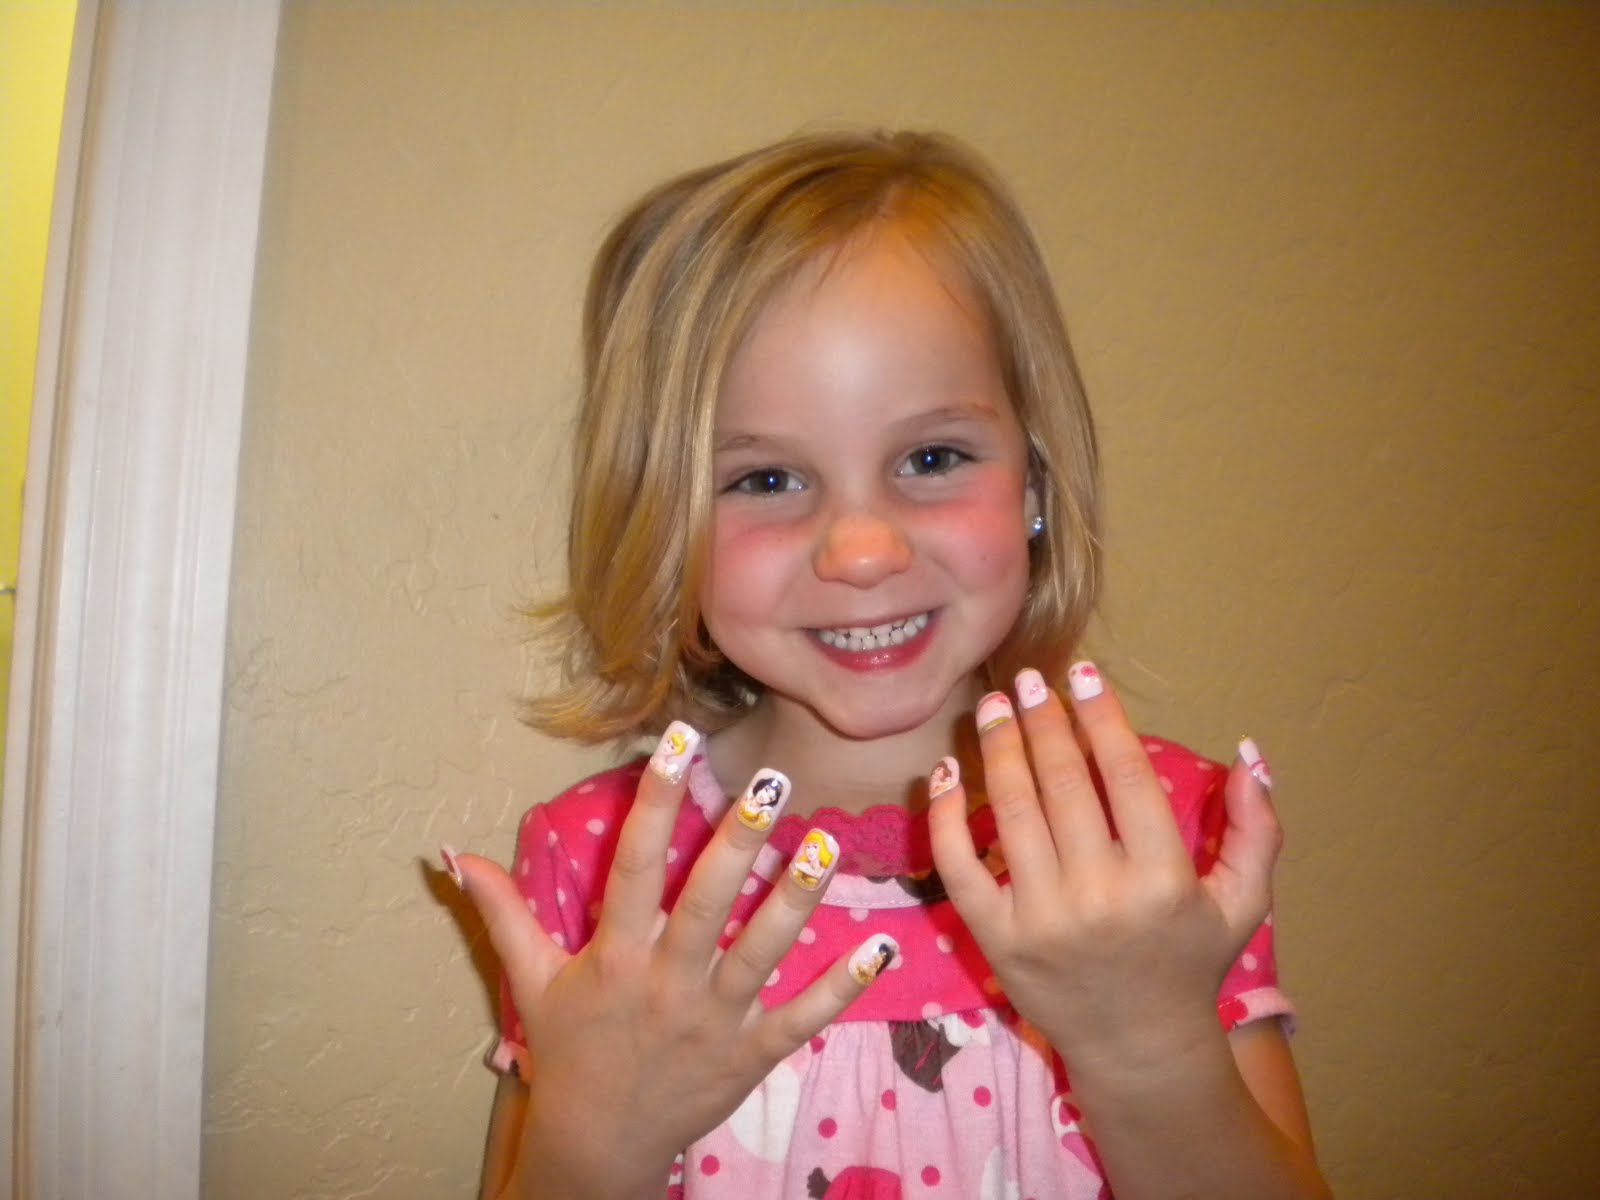 Cute Fake Nail Designs for Kids